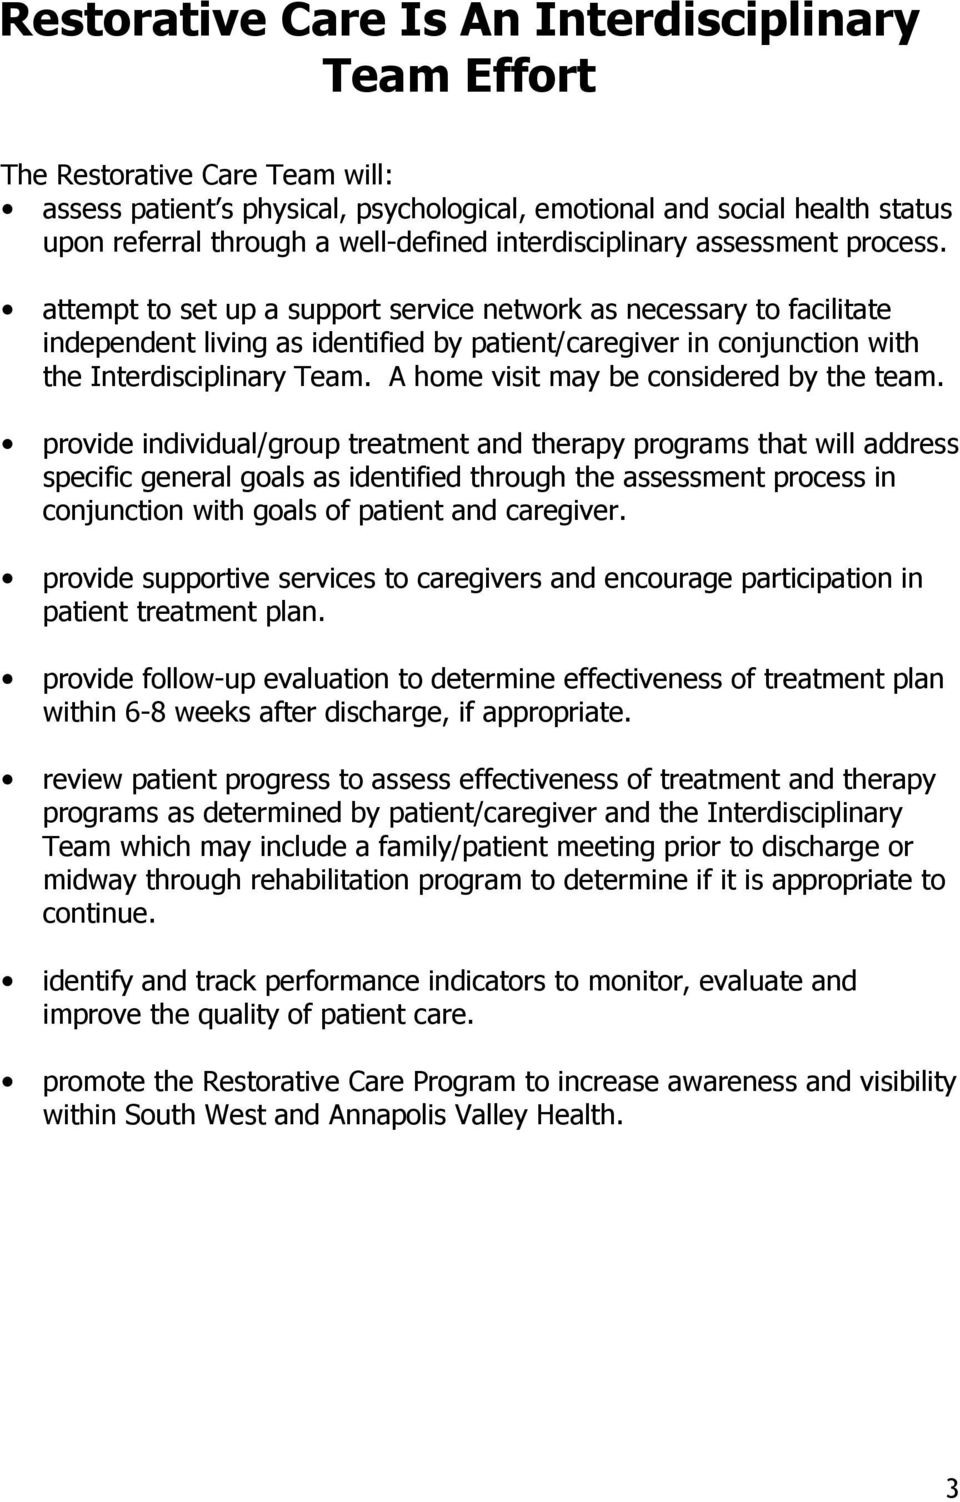 attempt to set up a support service network as necessary to facilitate independent living as identified by patient/caregiver in conjunction with the Interdisciplinary Team.